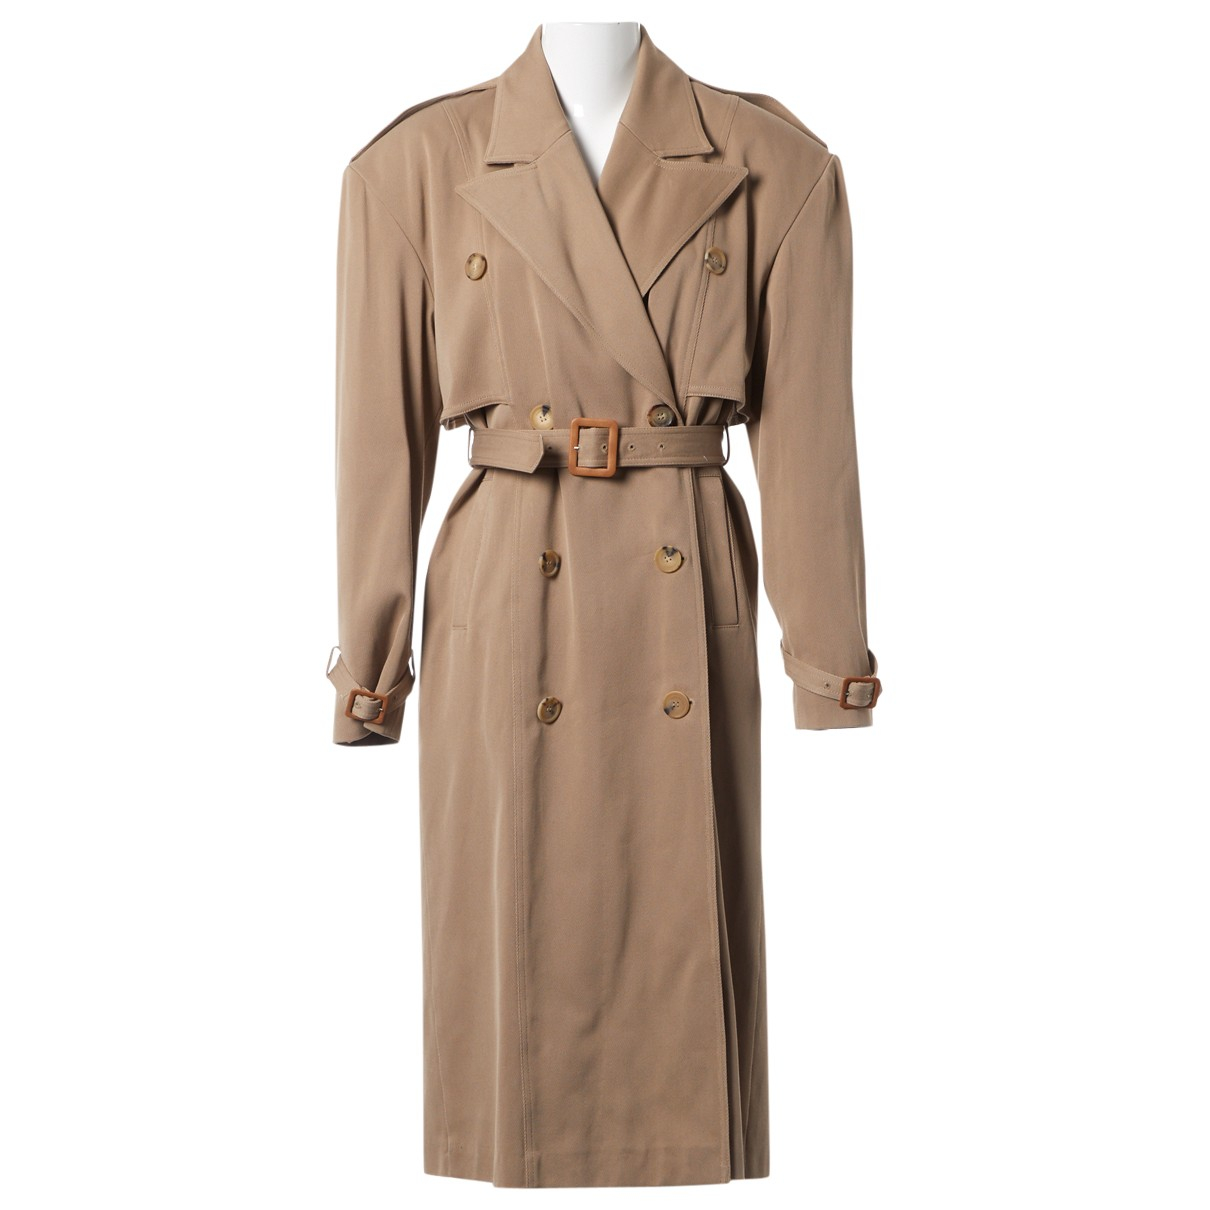 Magda Butrym \N Beige Cotton coat for Women 34 FR